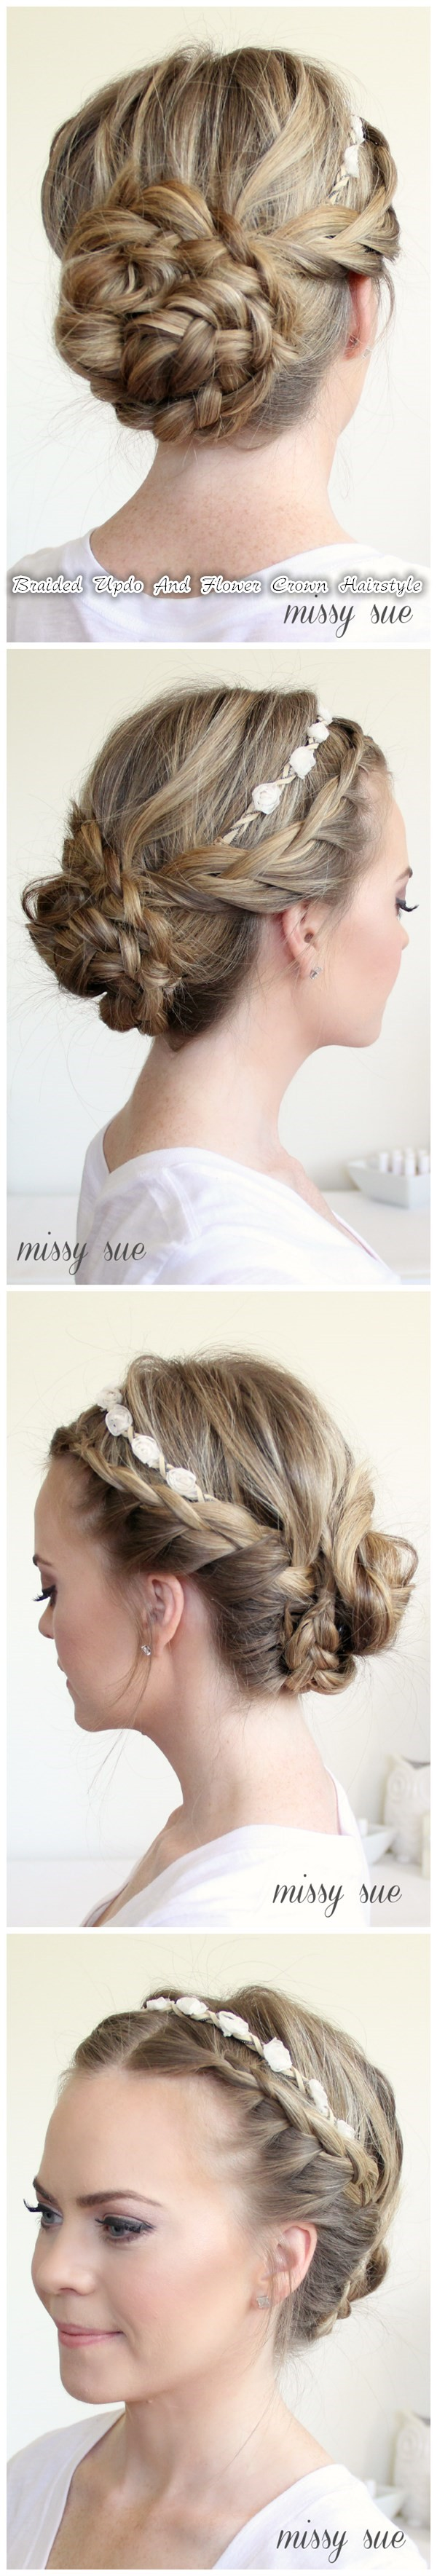 Braided updo and flower crown hairstyle hot diy tutorial braided updo and flower crown hairstyle izmirmasajfo